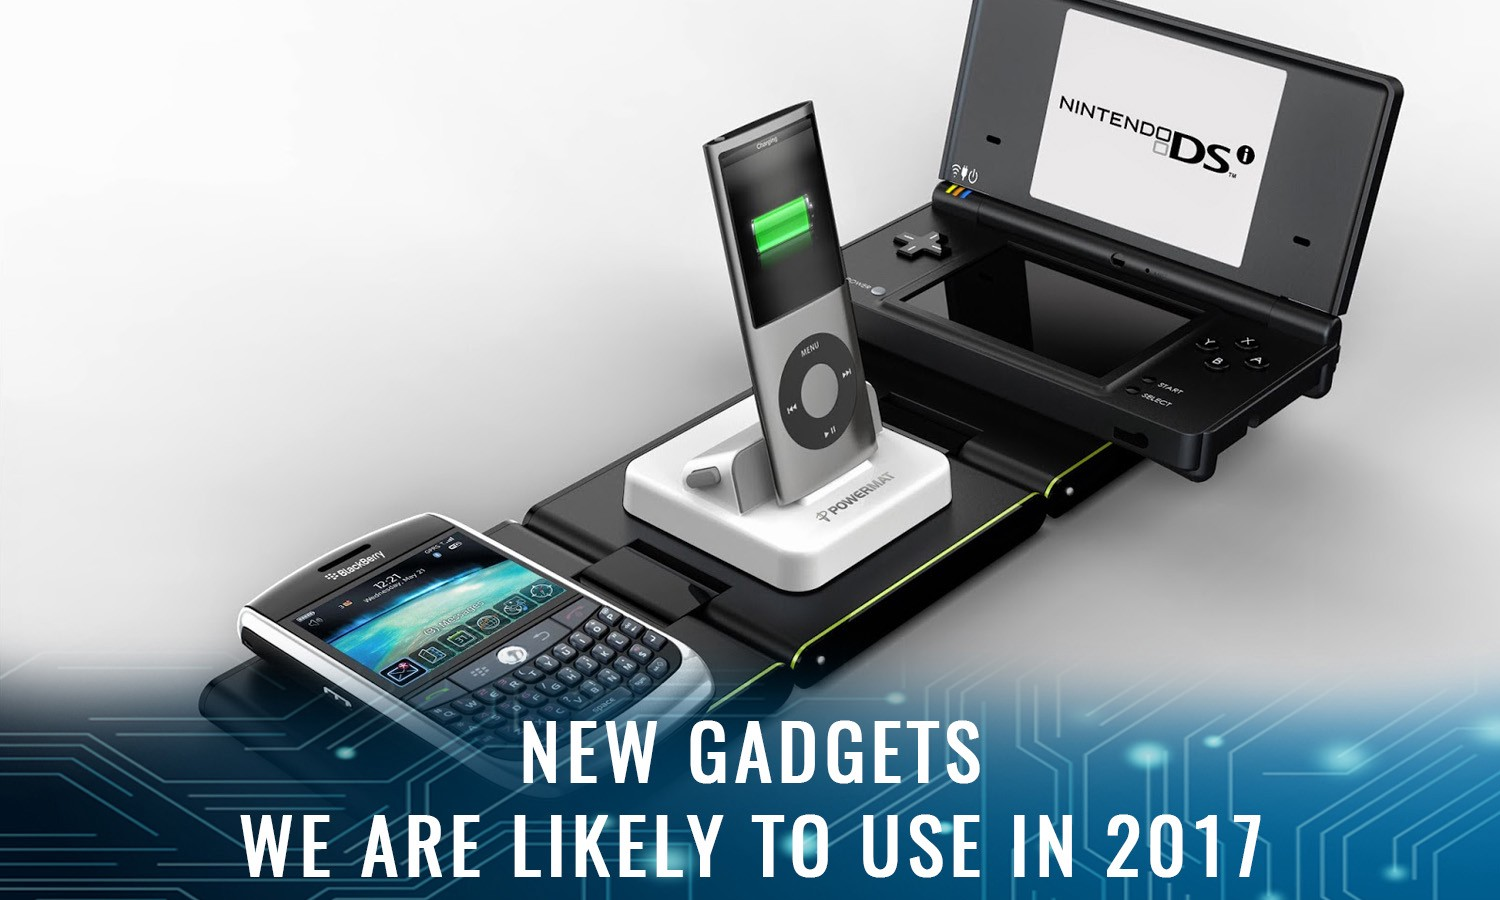 Amazing 5 New Gadgets For The Year 2017